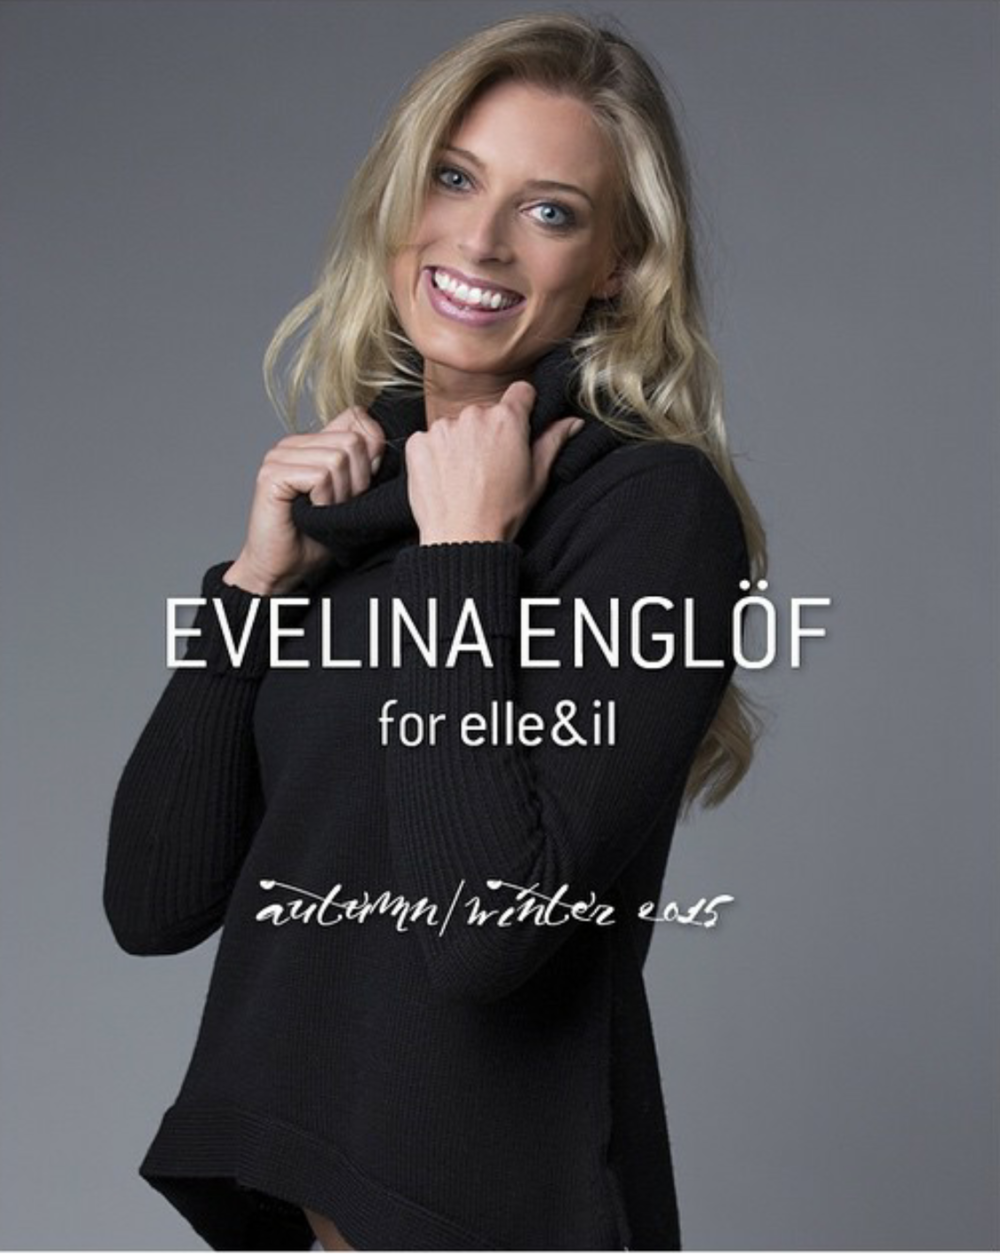 Evelina.png